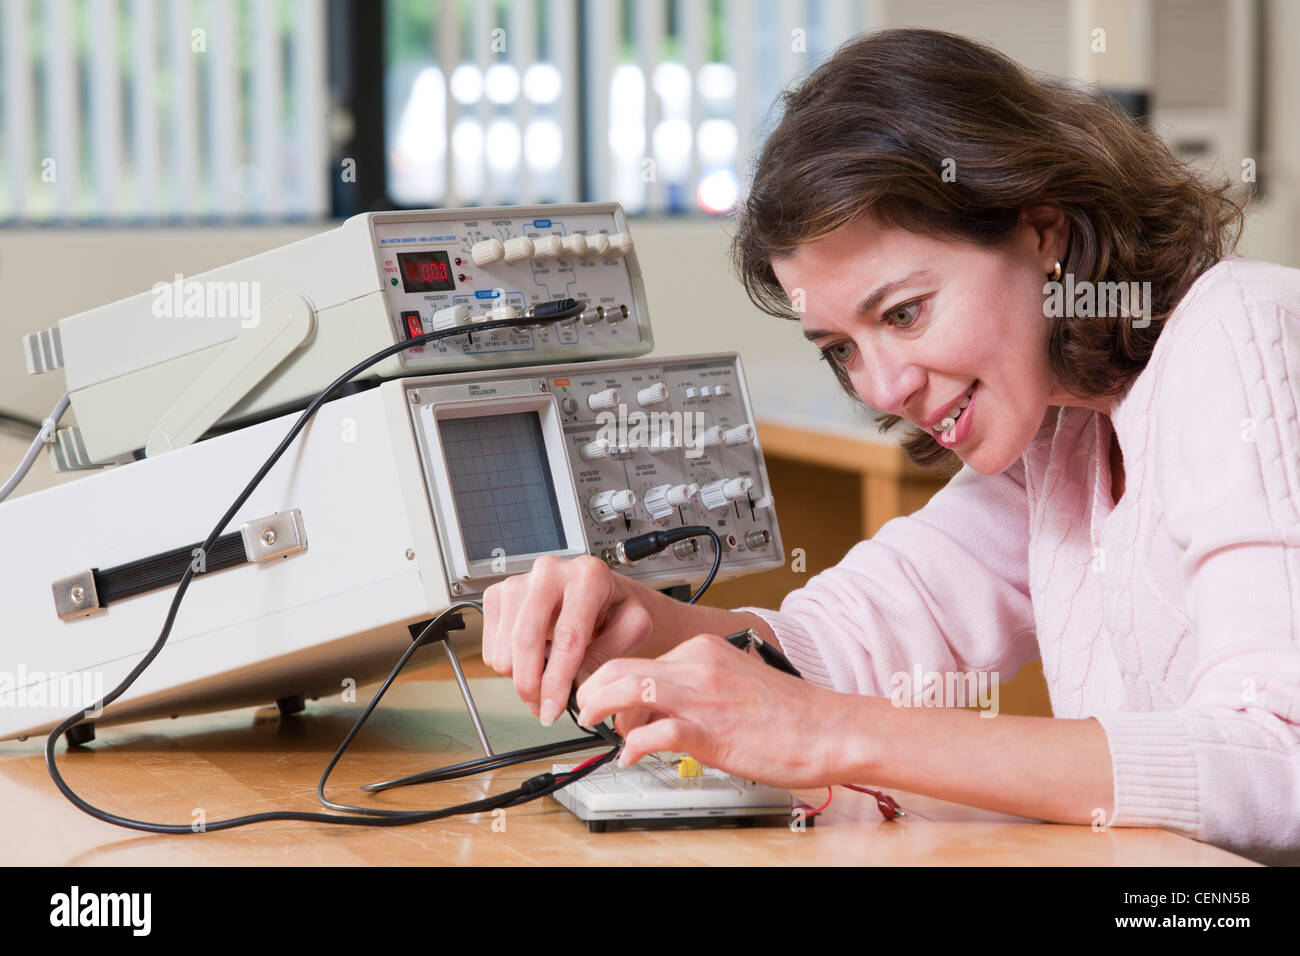 Breadboard Stockfotos & Breadboard Bilder - Alamy